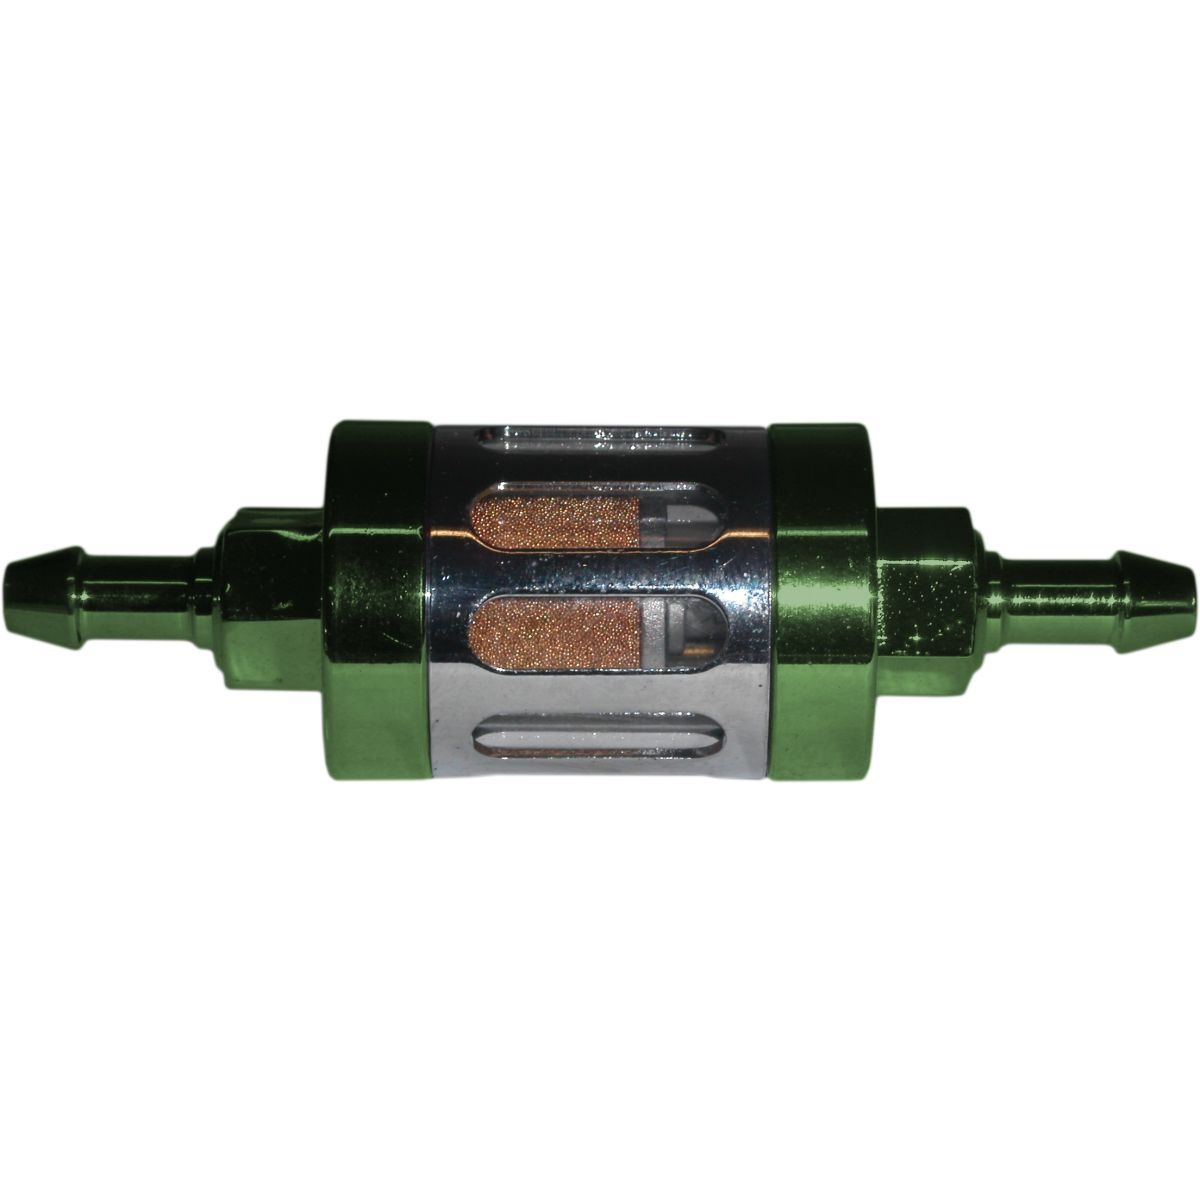 Aw Motorcycle Parts Fuel Filter 6mm Anodised Aluminium Green Glass Picture Of Centre